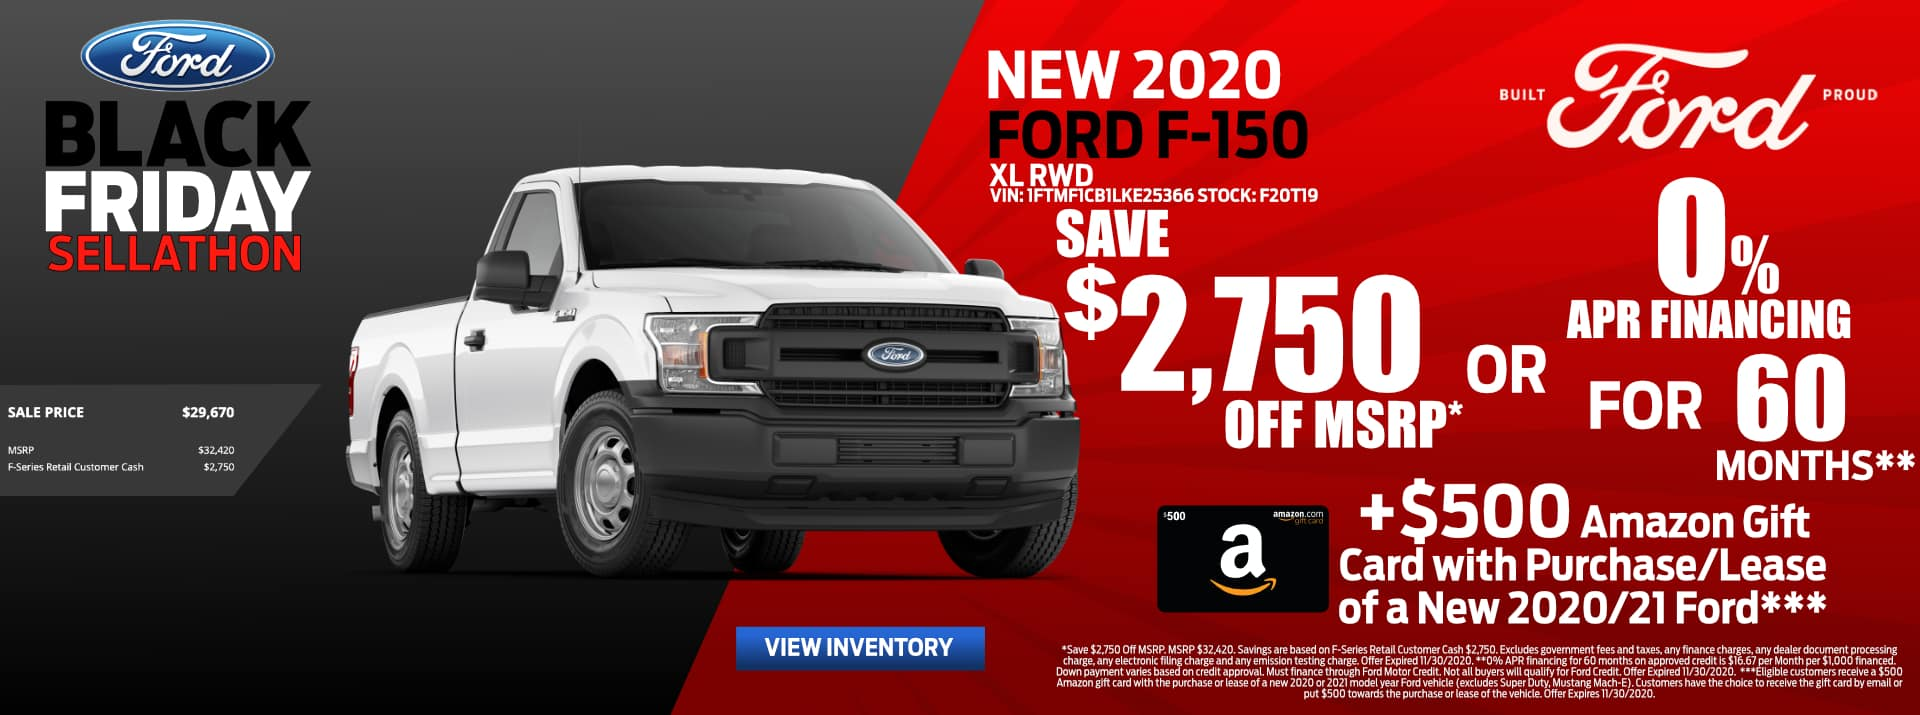 RR_Black Friday_November-2020_Ford_F-150 PSF